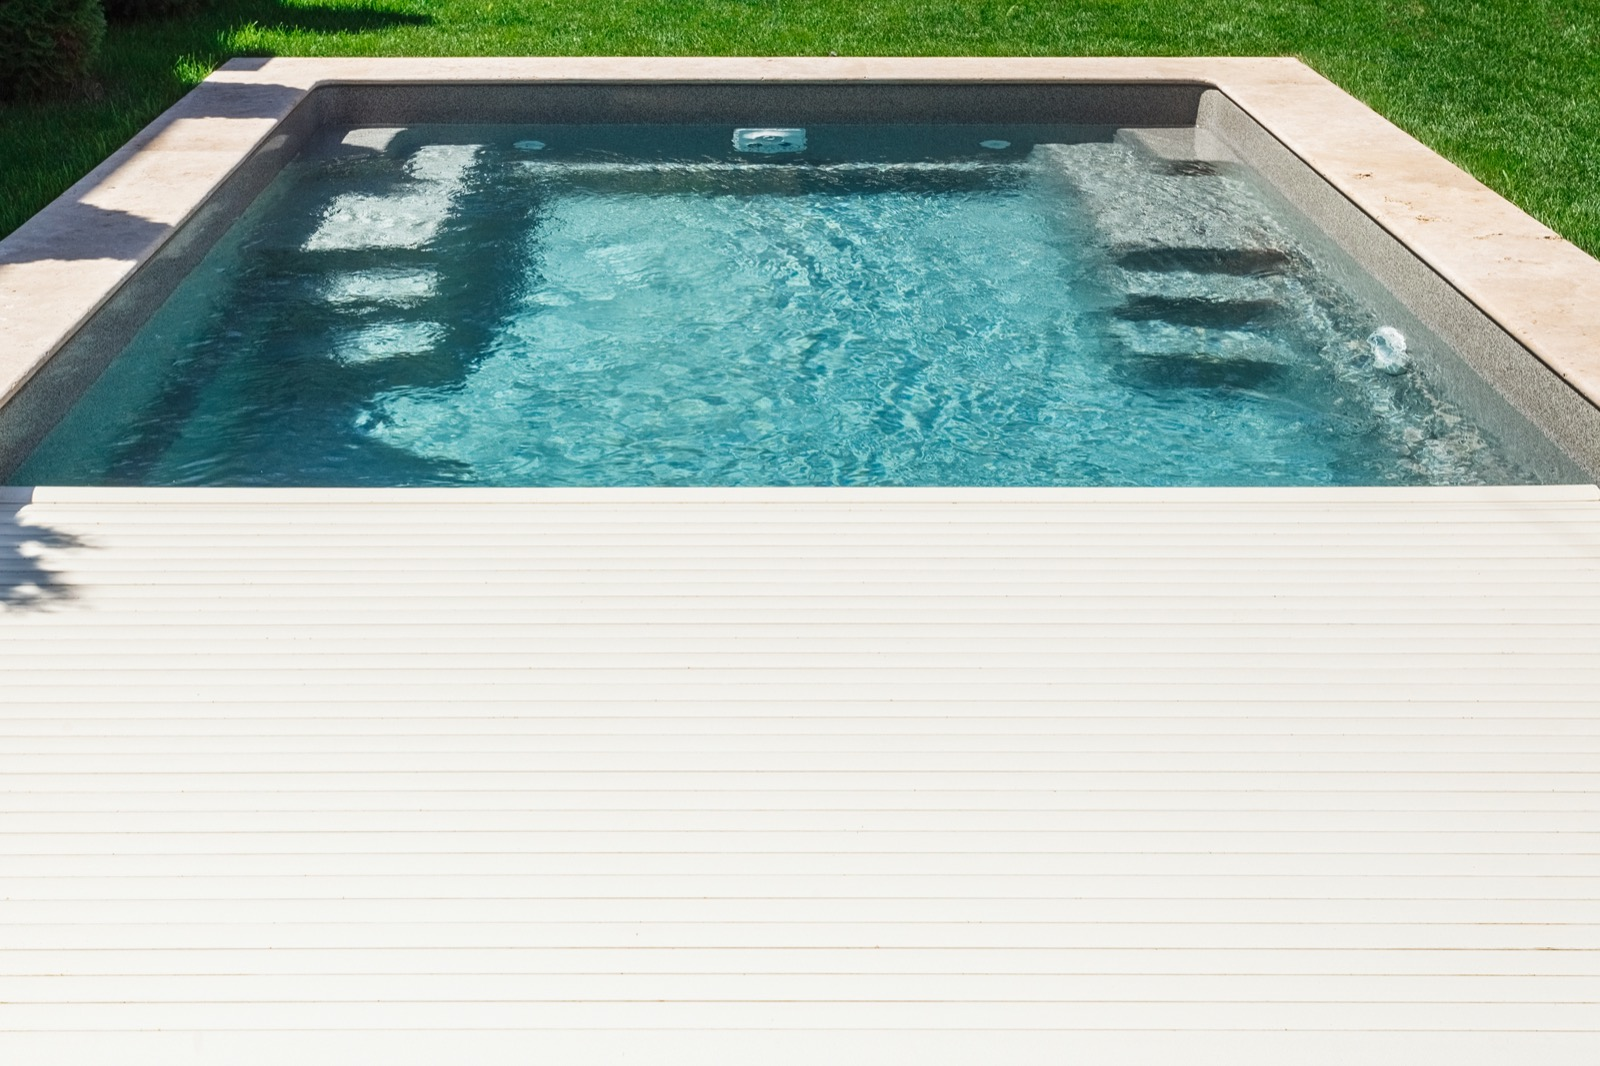 Poolcover (4)